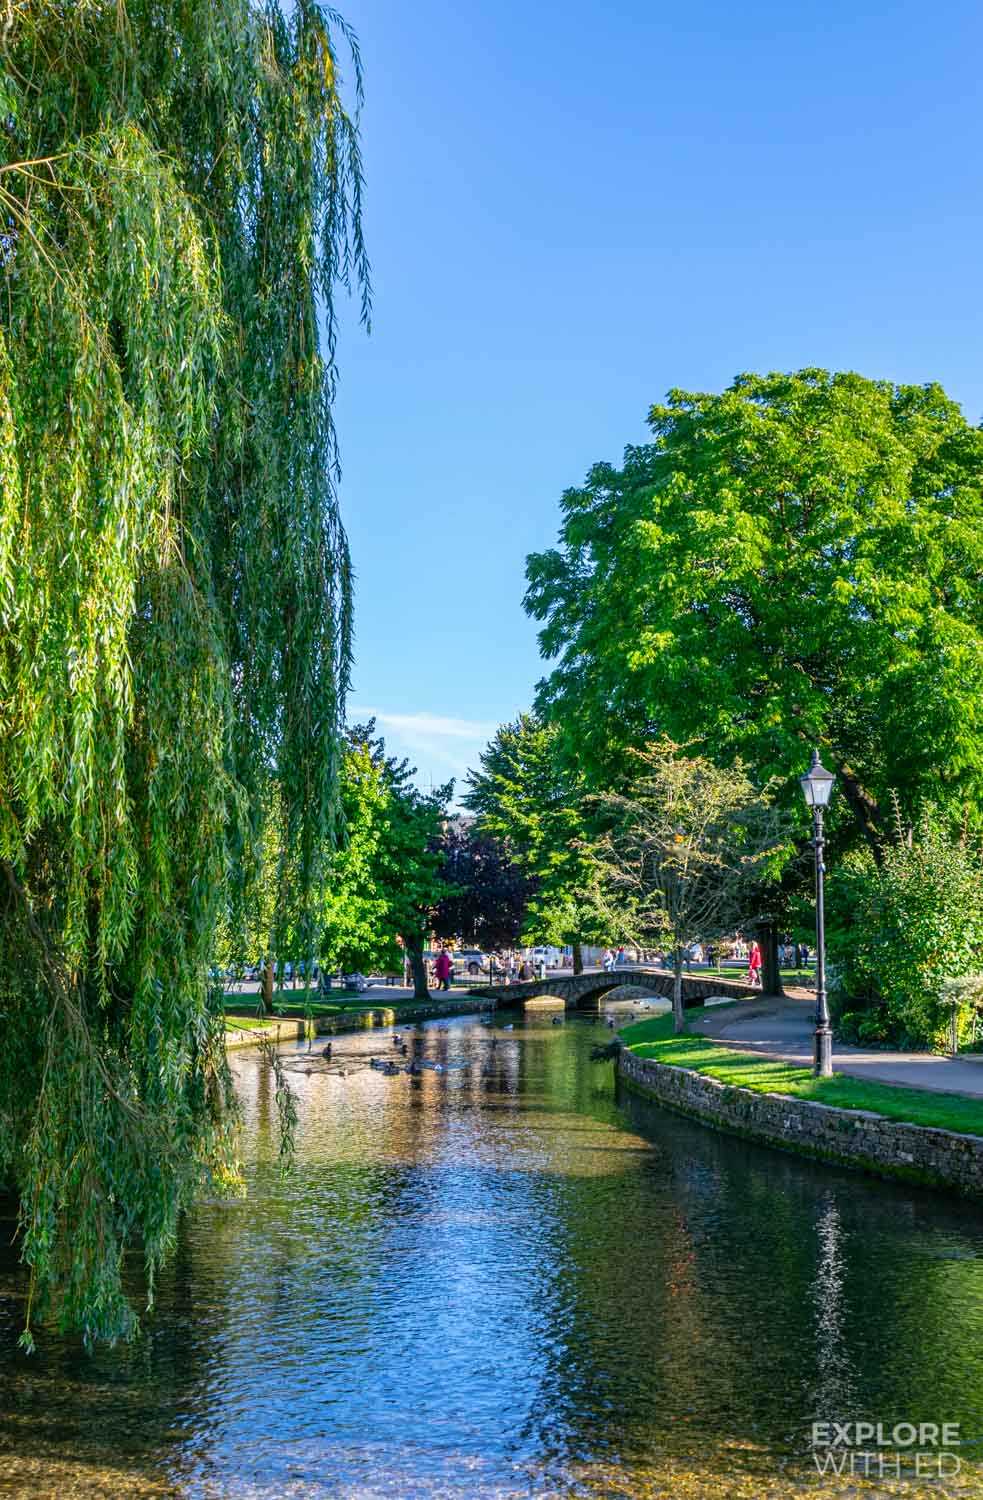 Bourton-on-the-Water is the Venice of The Cotswolds